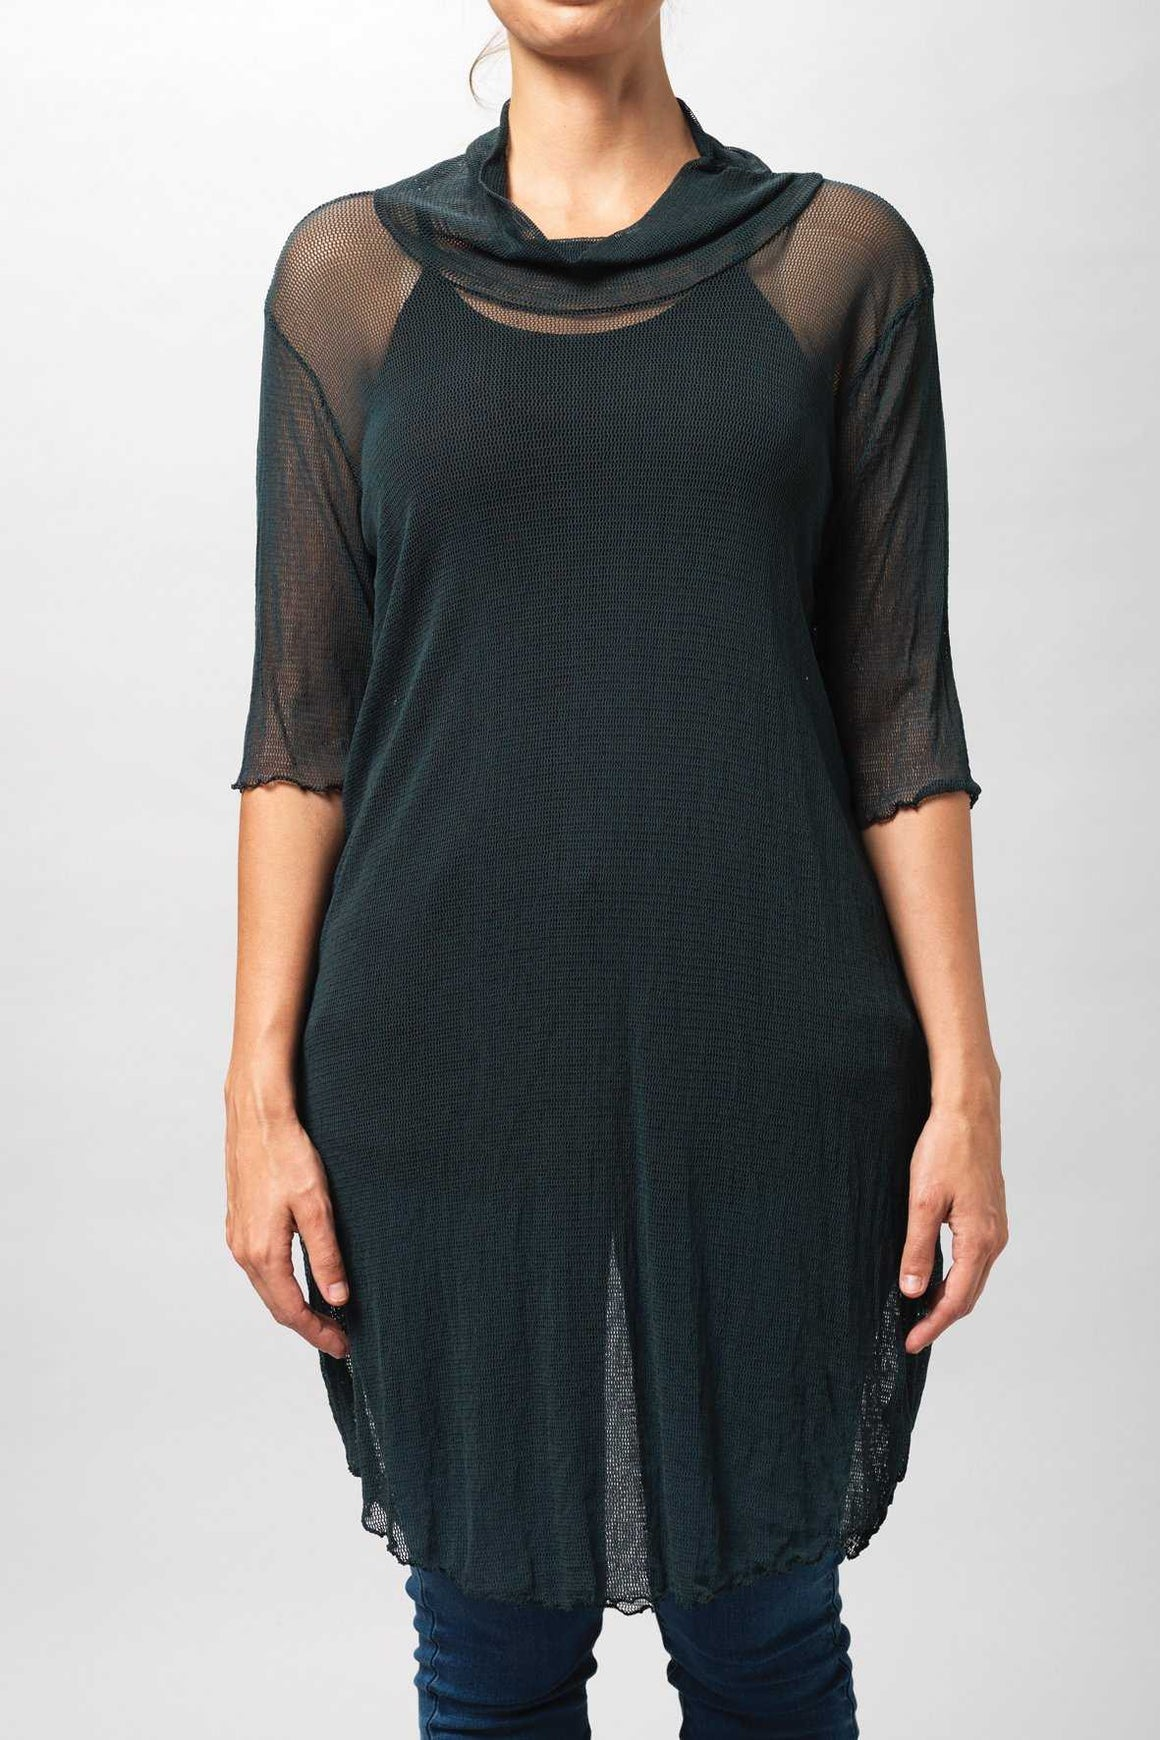 skivvy tunic open mesh fabric in Dark Green